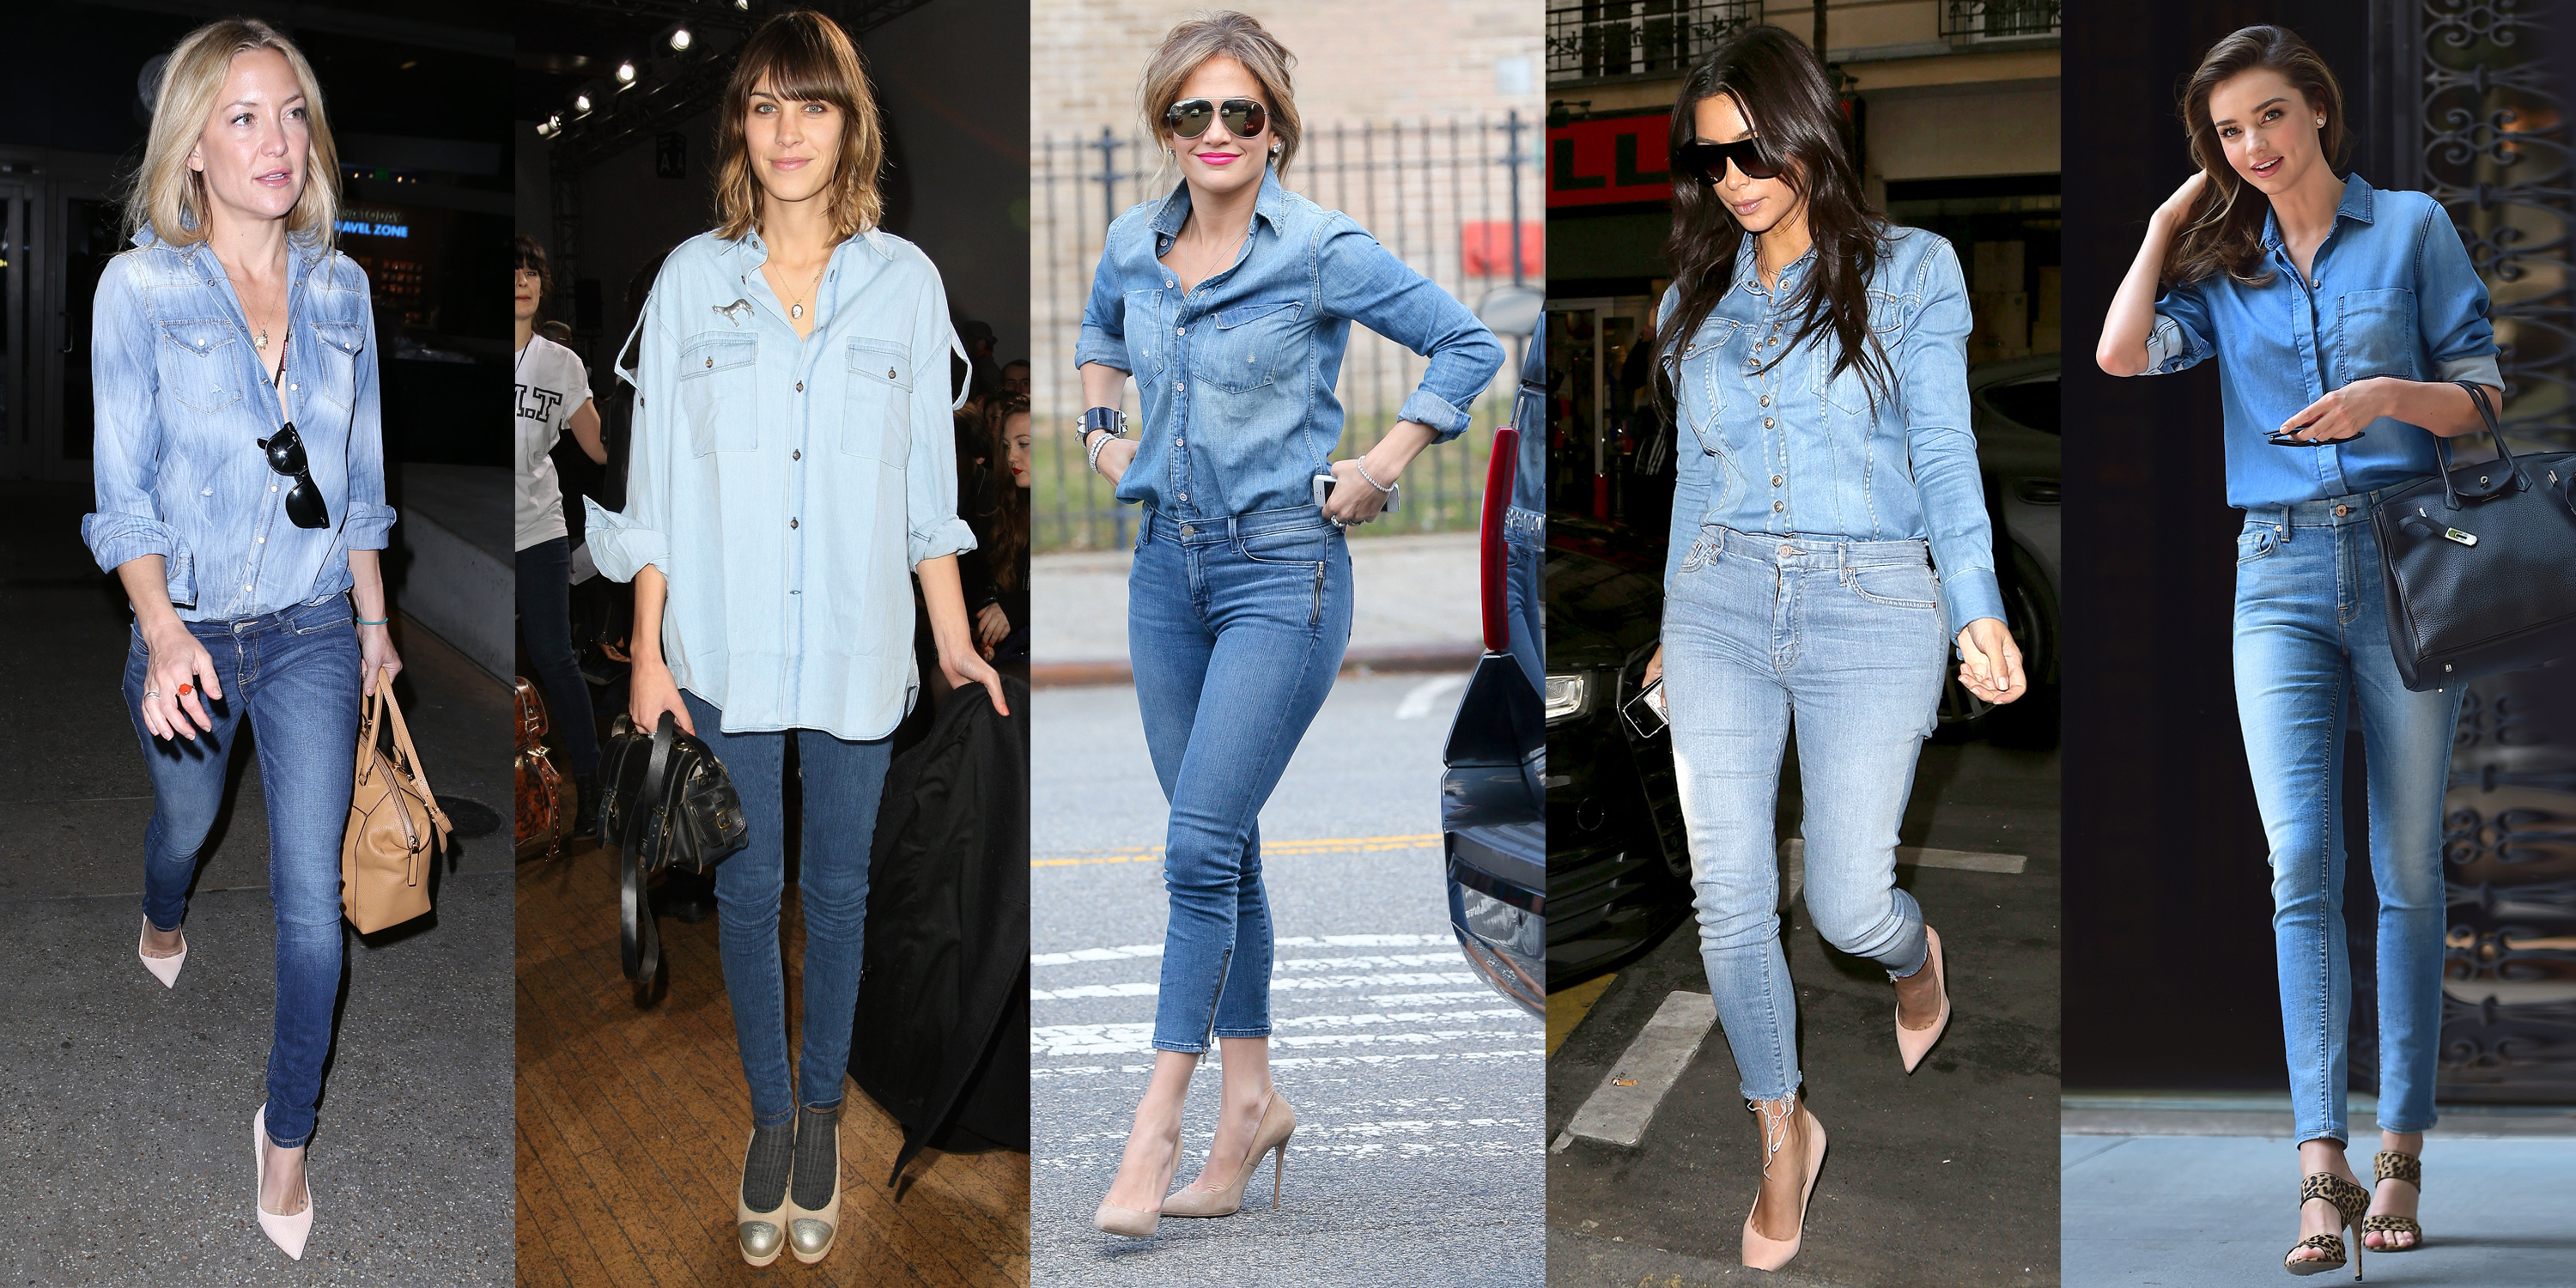 How to Wear a Canadian Tuxedo